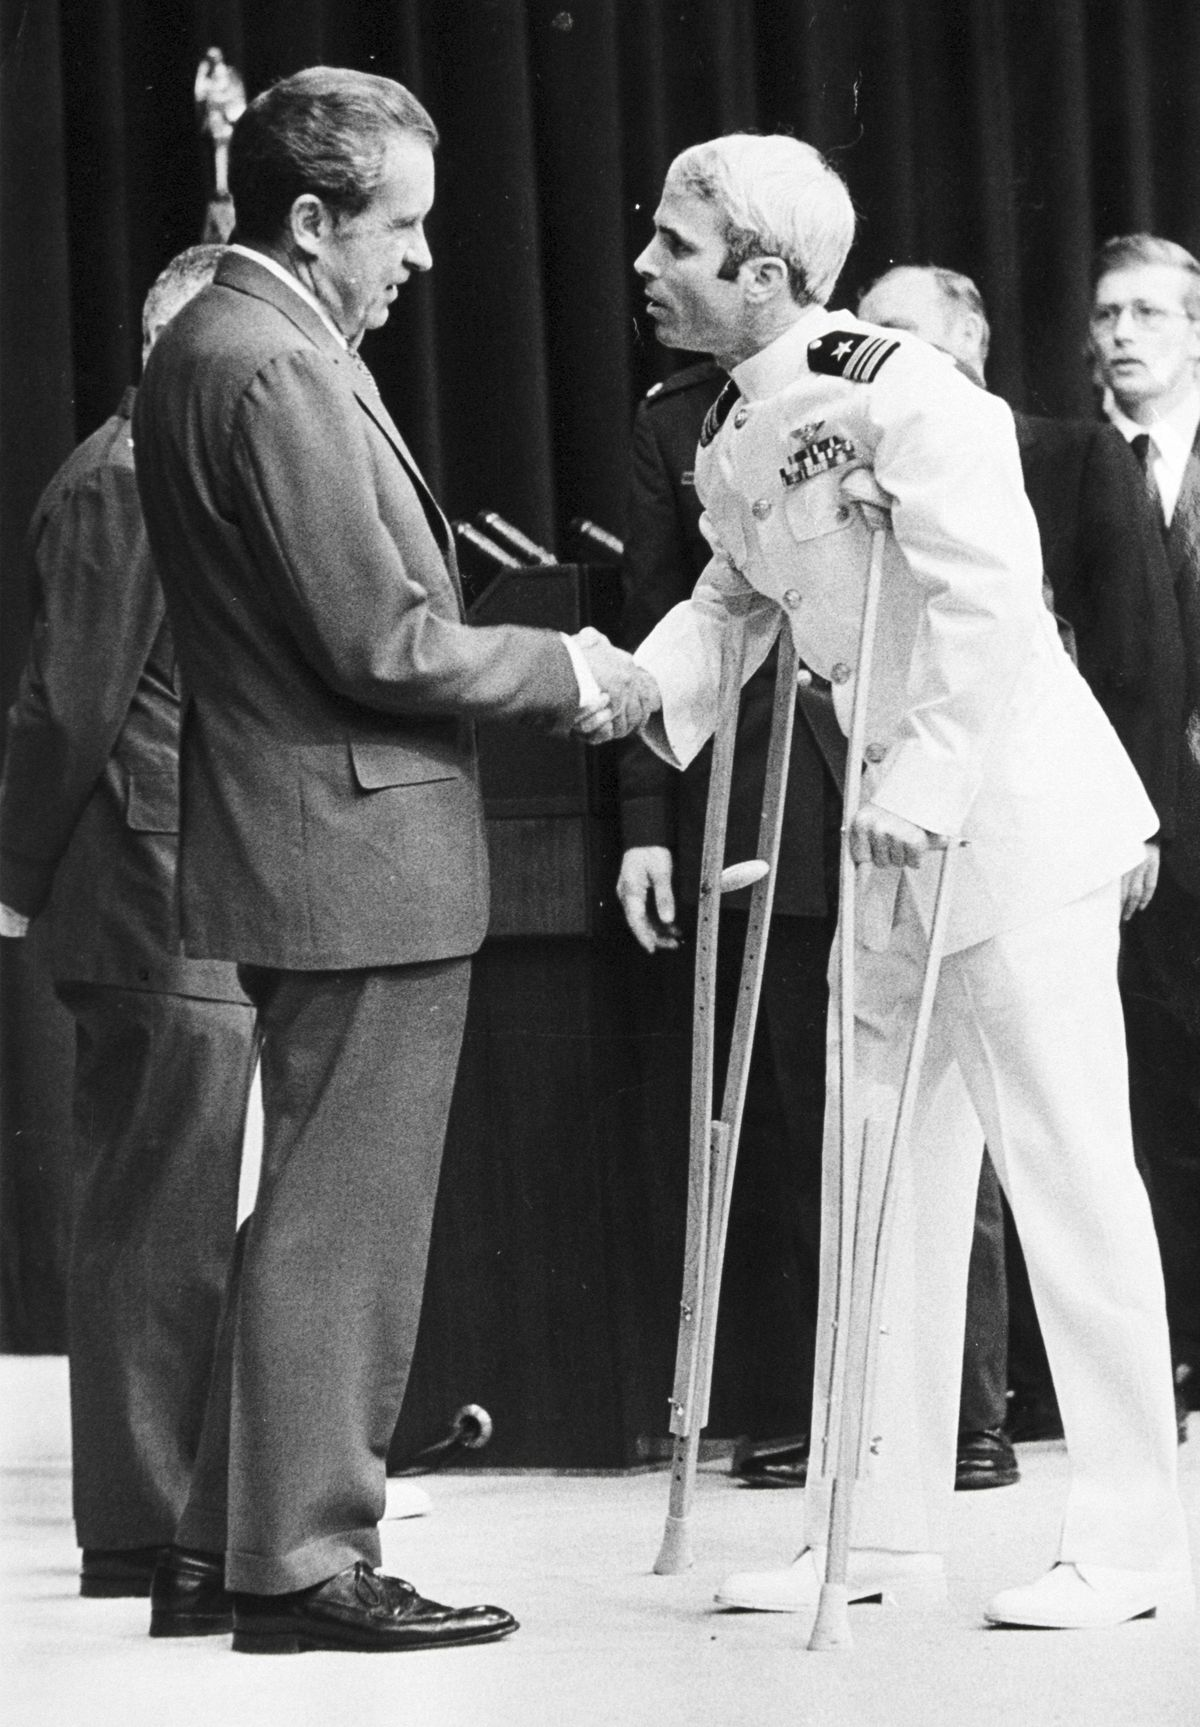 US Navy pilot John Mccain Is welcomed by President Richard Nixon upon Mccain's release from five-and-a-half years as a POW during the Vietnam War, on May 24, 1973, in Washington, DC.